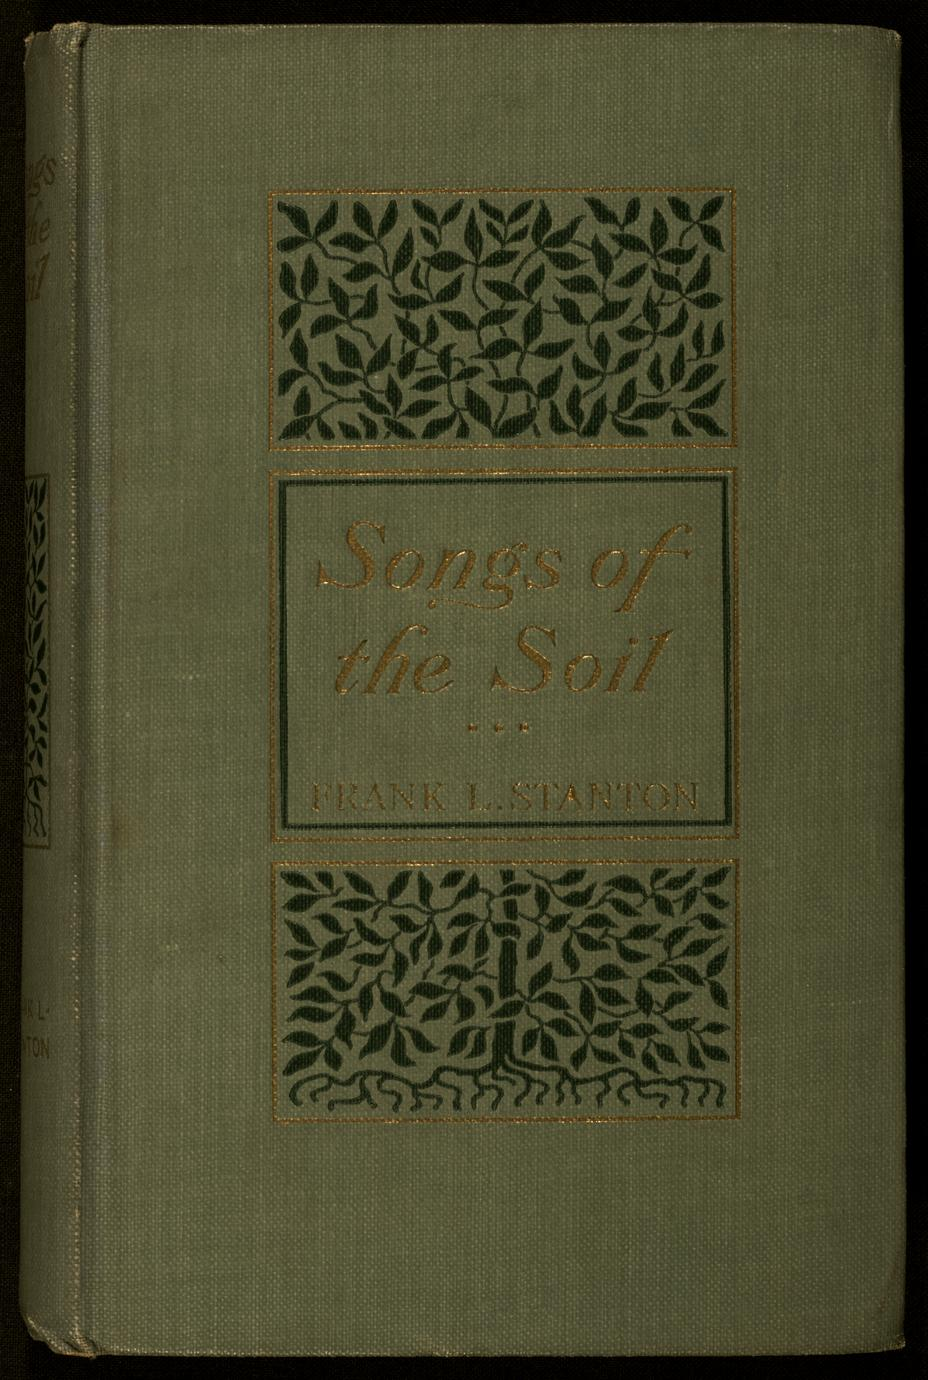 Songs of the soil (1 of 2)